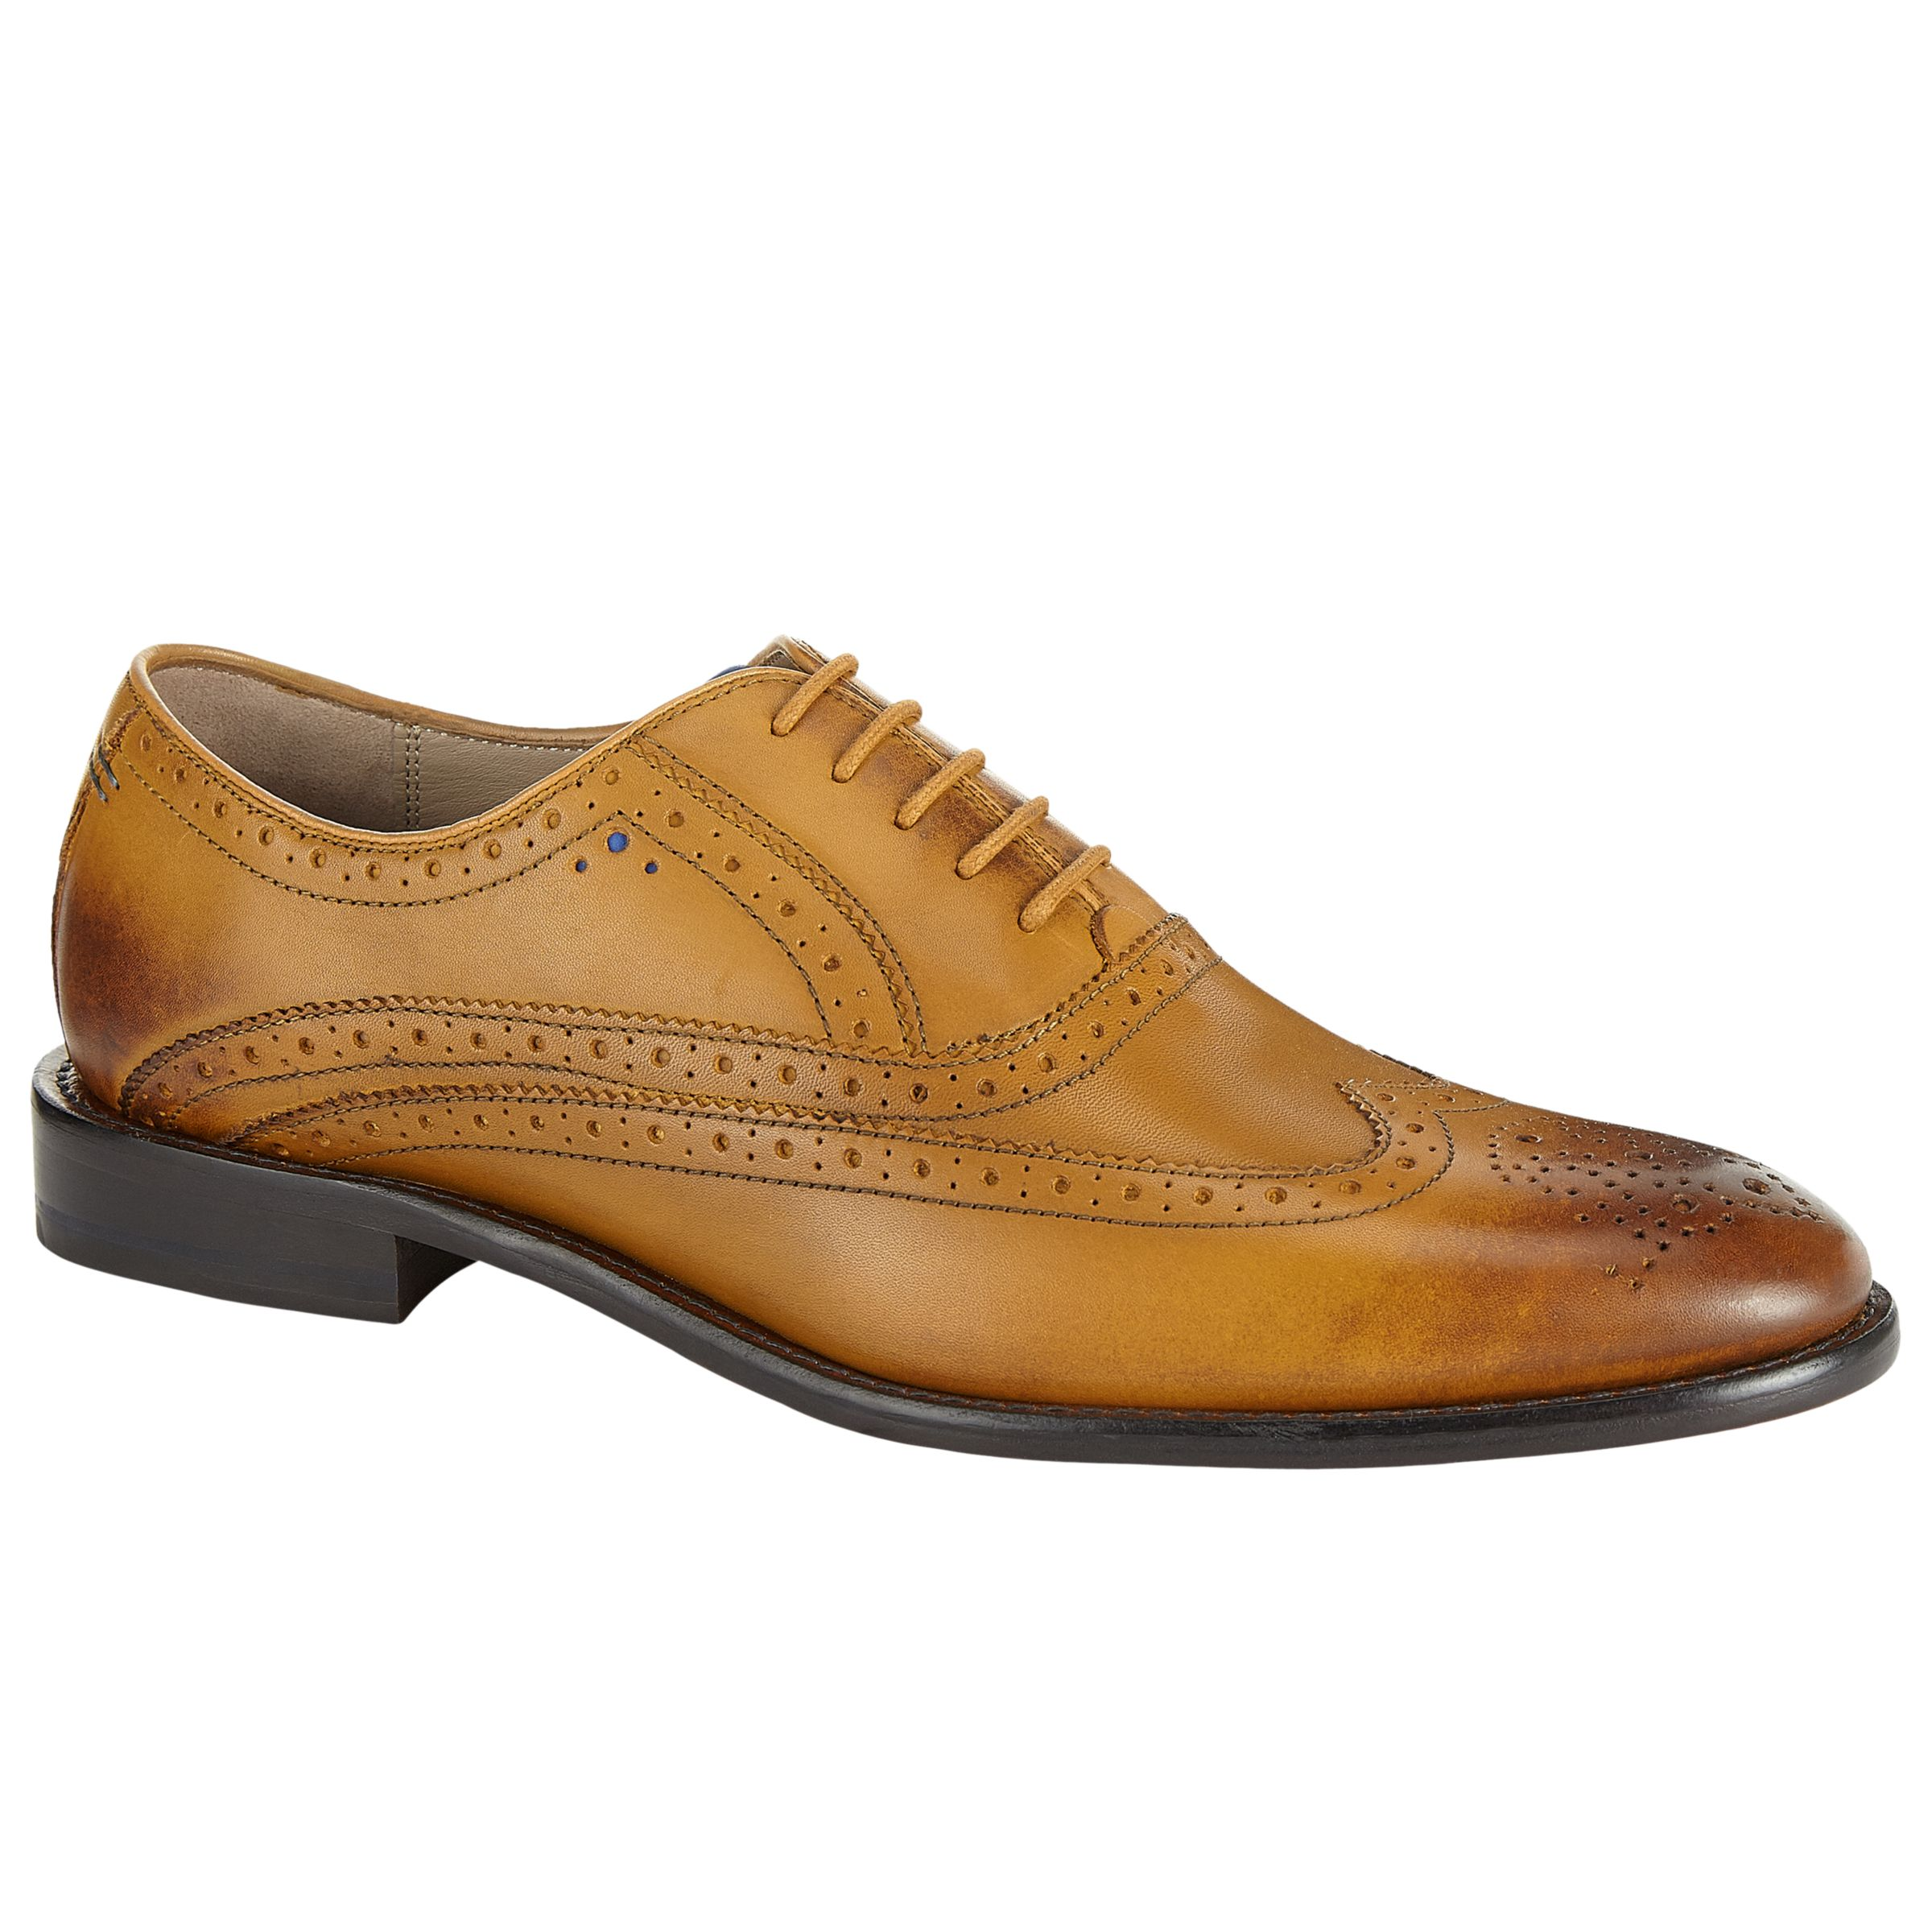 Oliver Sweeney Oliver Sweeney Fellbeck Leather Lace-Up Brogues